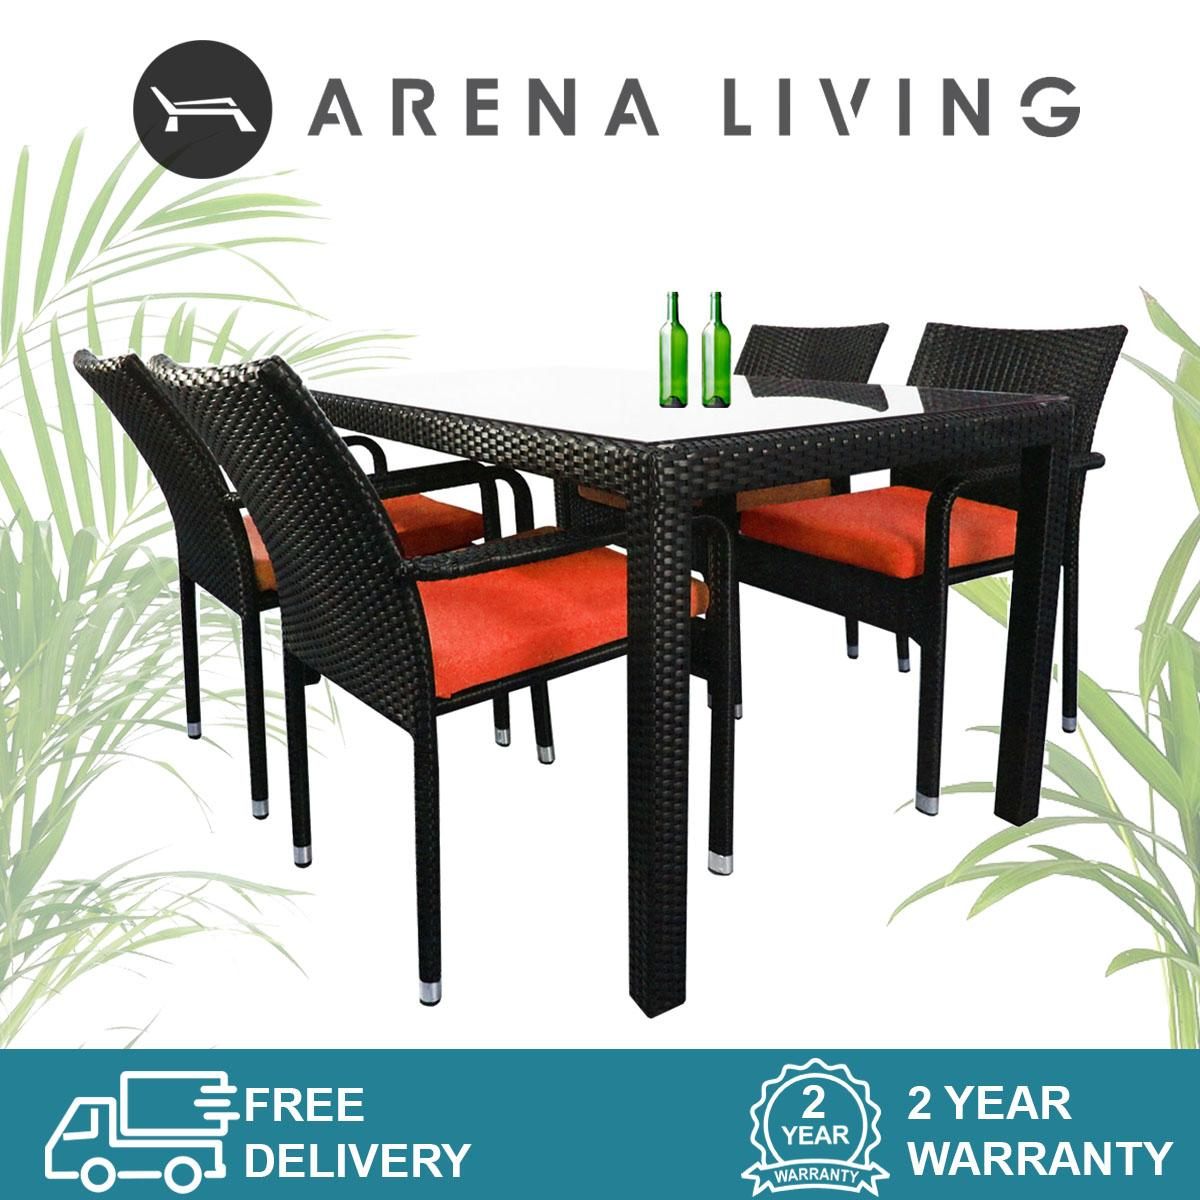 Boulevard 4 Chair Dining Set Orange Cushion, Outdoor Furniture by Arena Living™